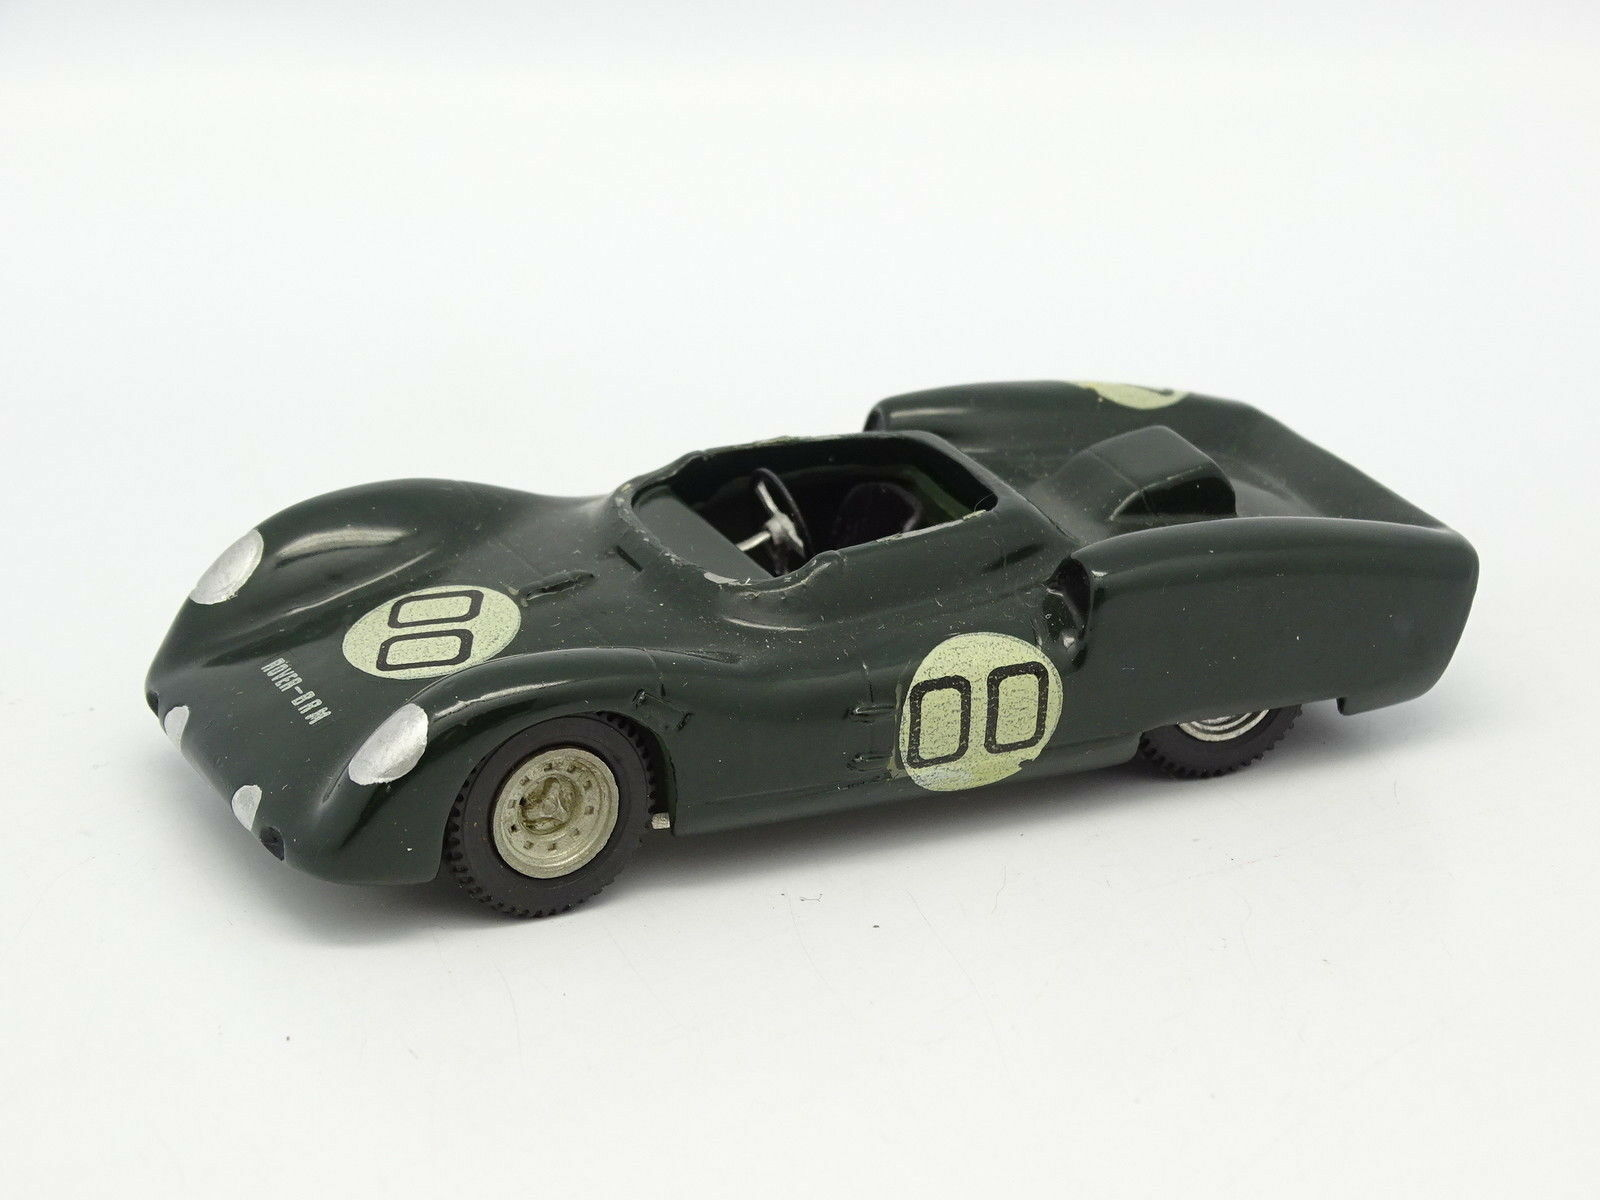 John Day Kit Assembled Metal 1 43 - Rover BRM Turbina No.00 Le Mans 1963